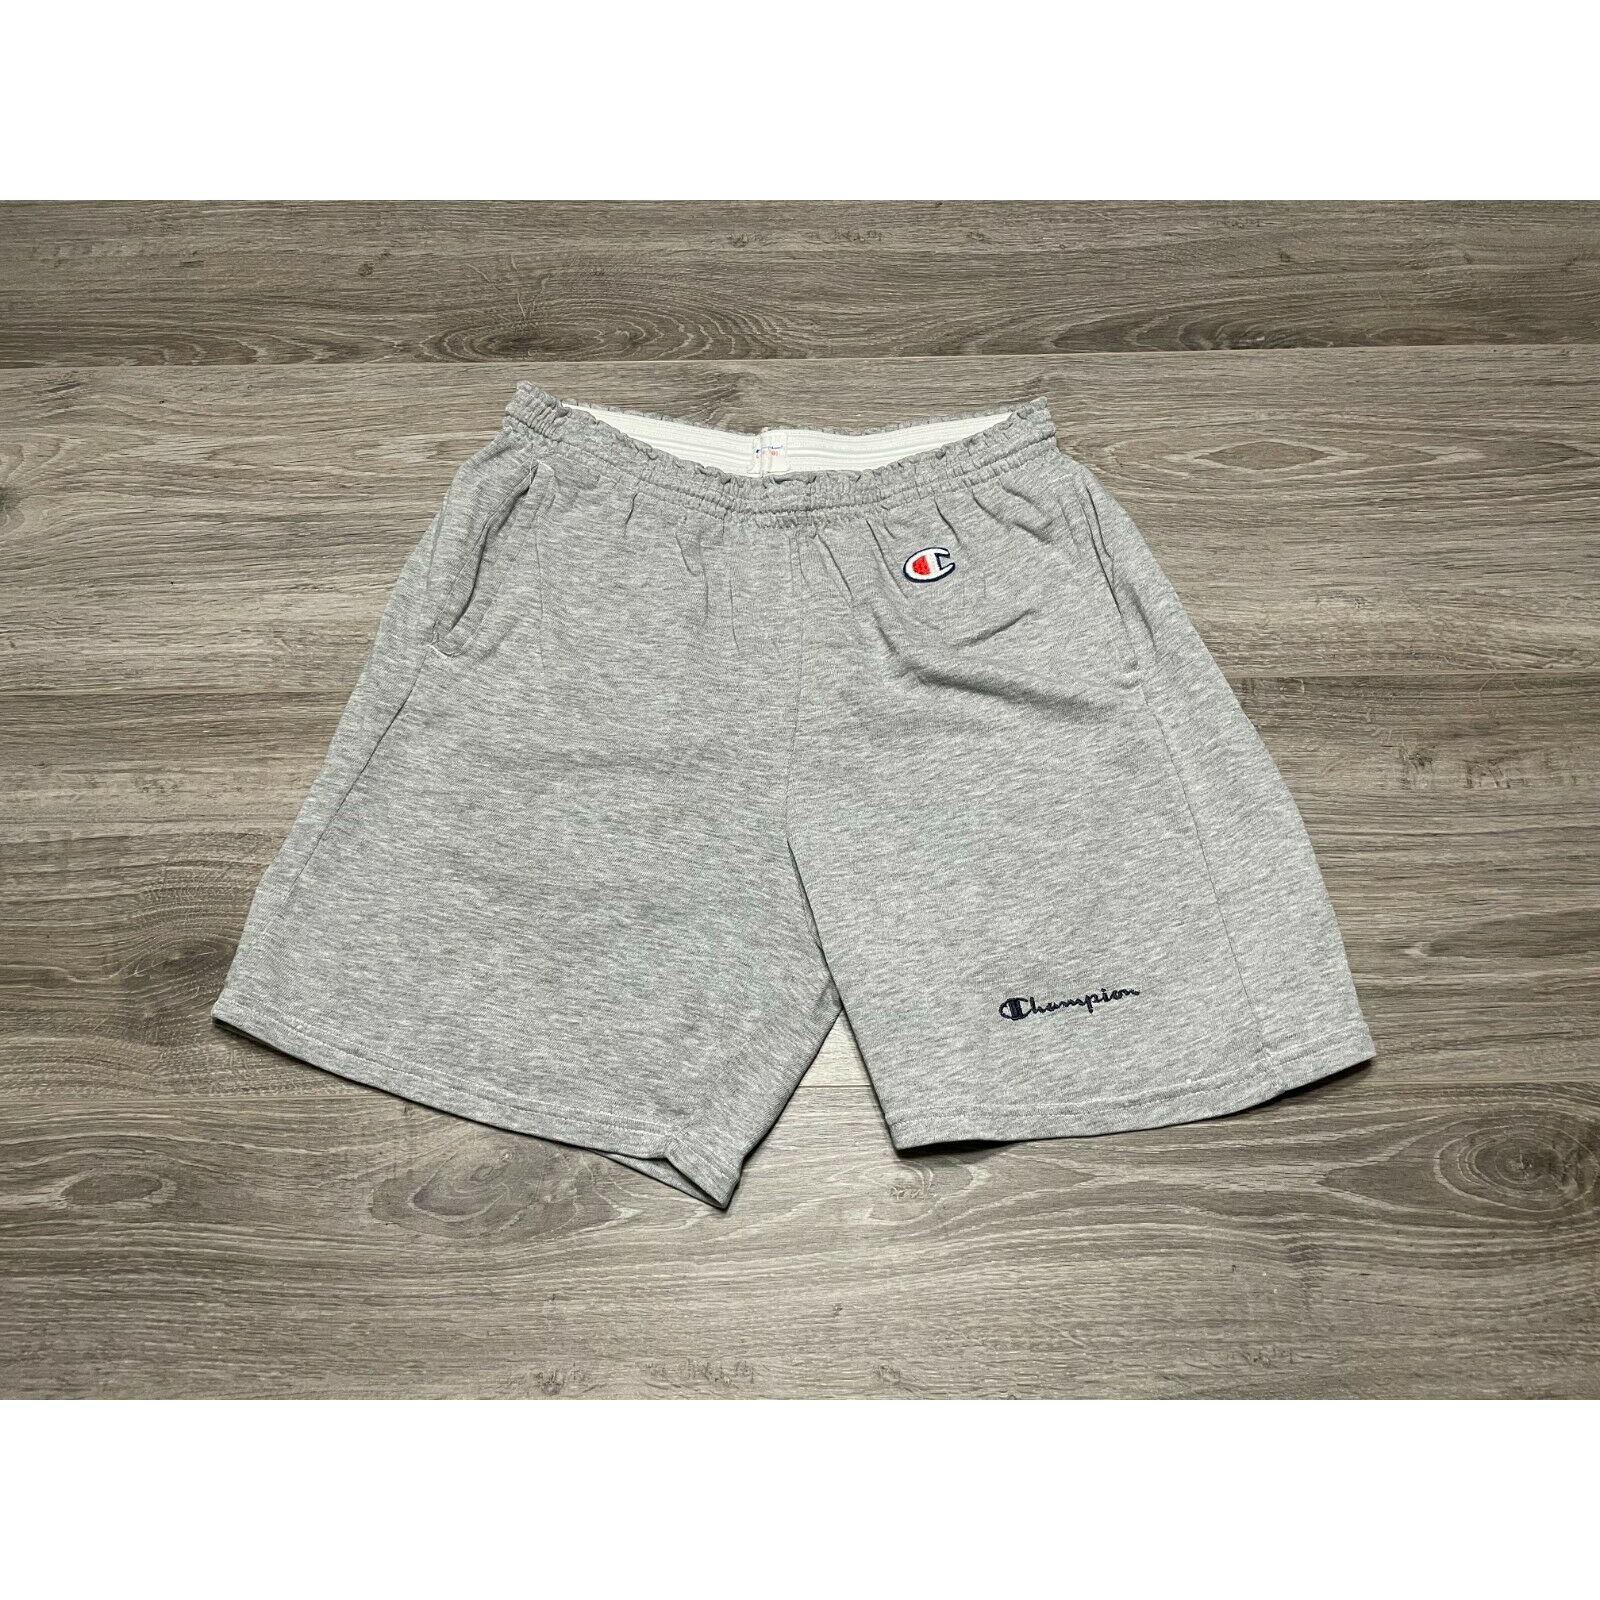 Product Image 1 - Vintage 90s Champion Embroidered Spell-Out